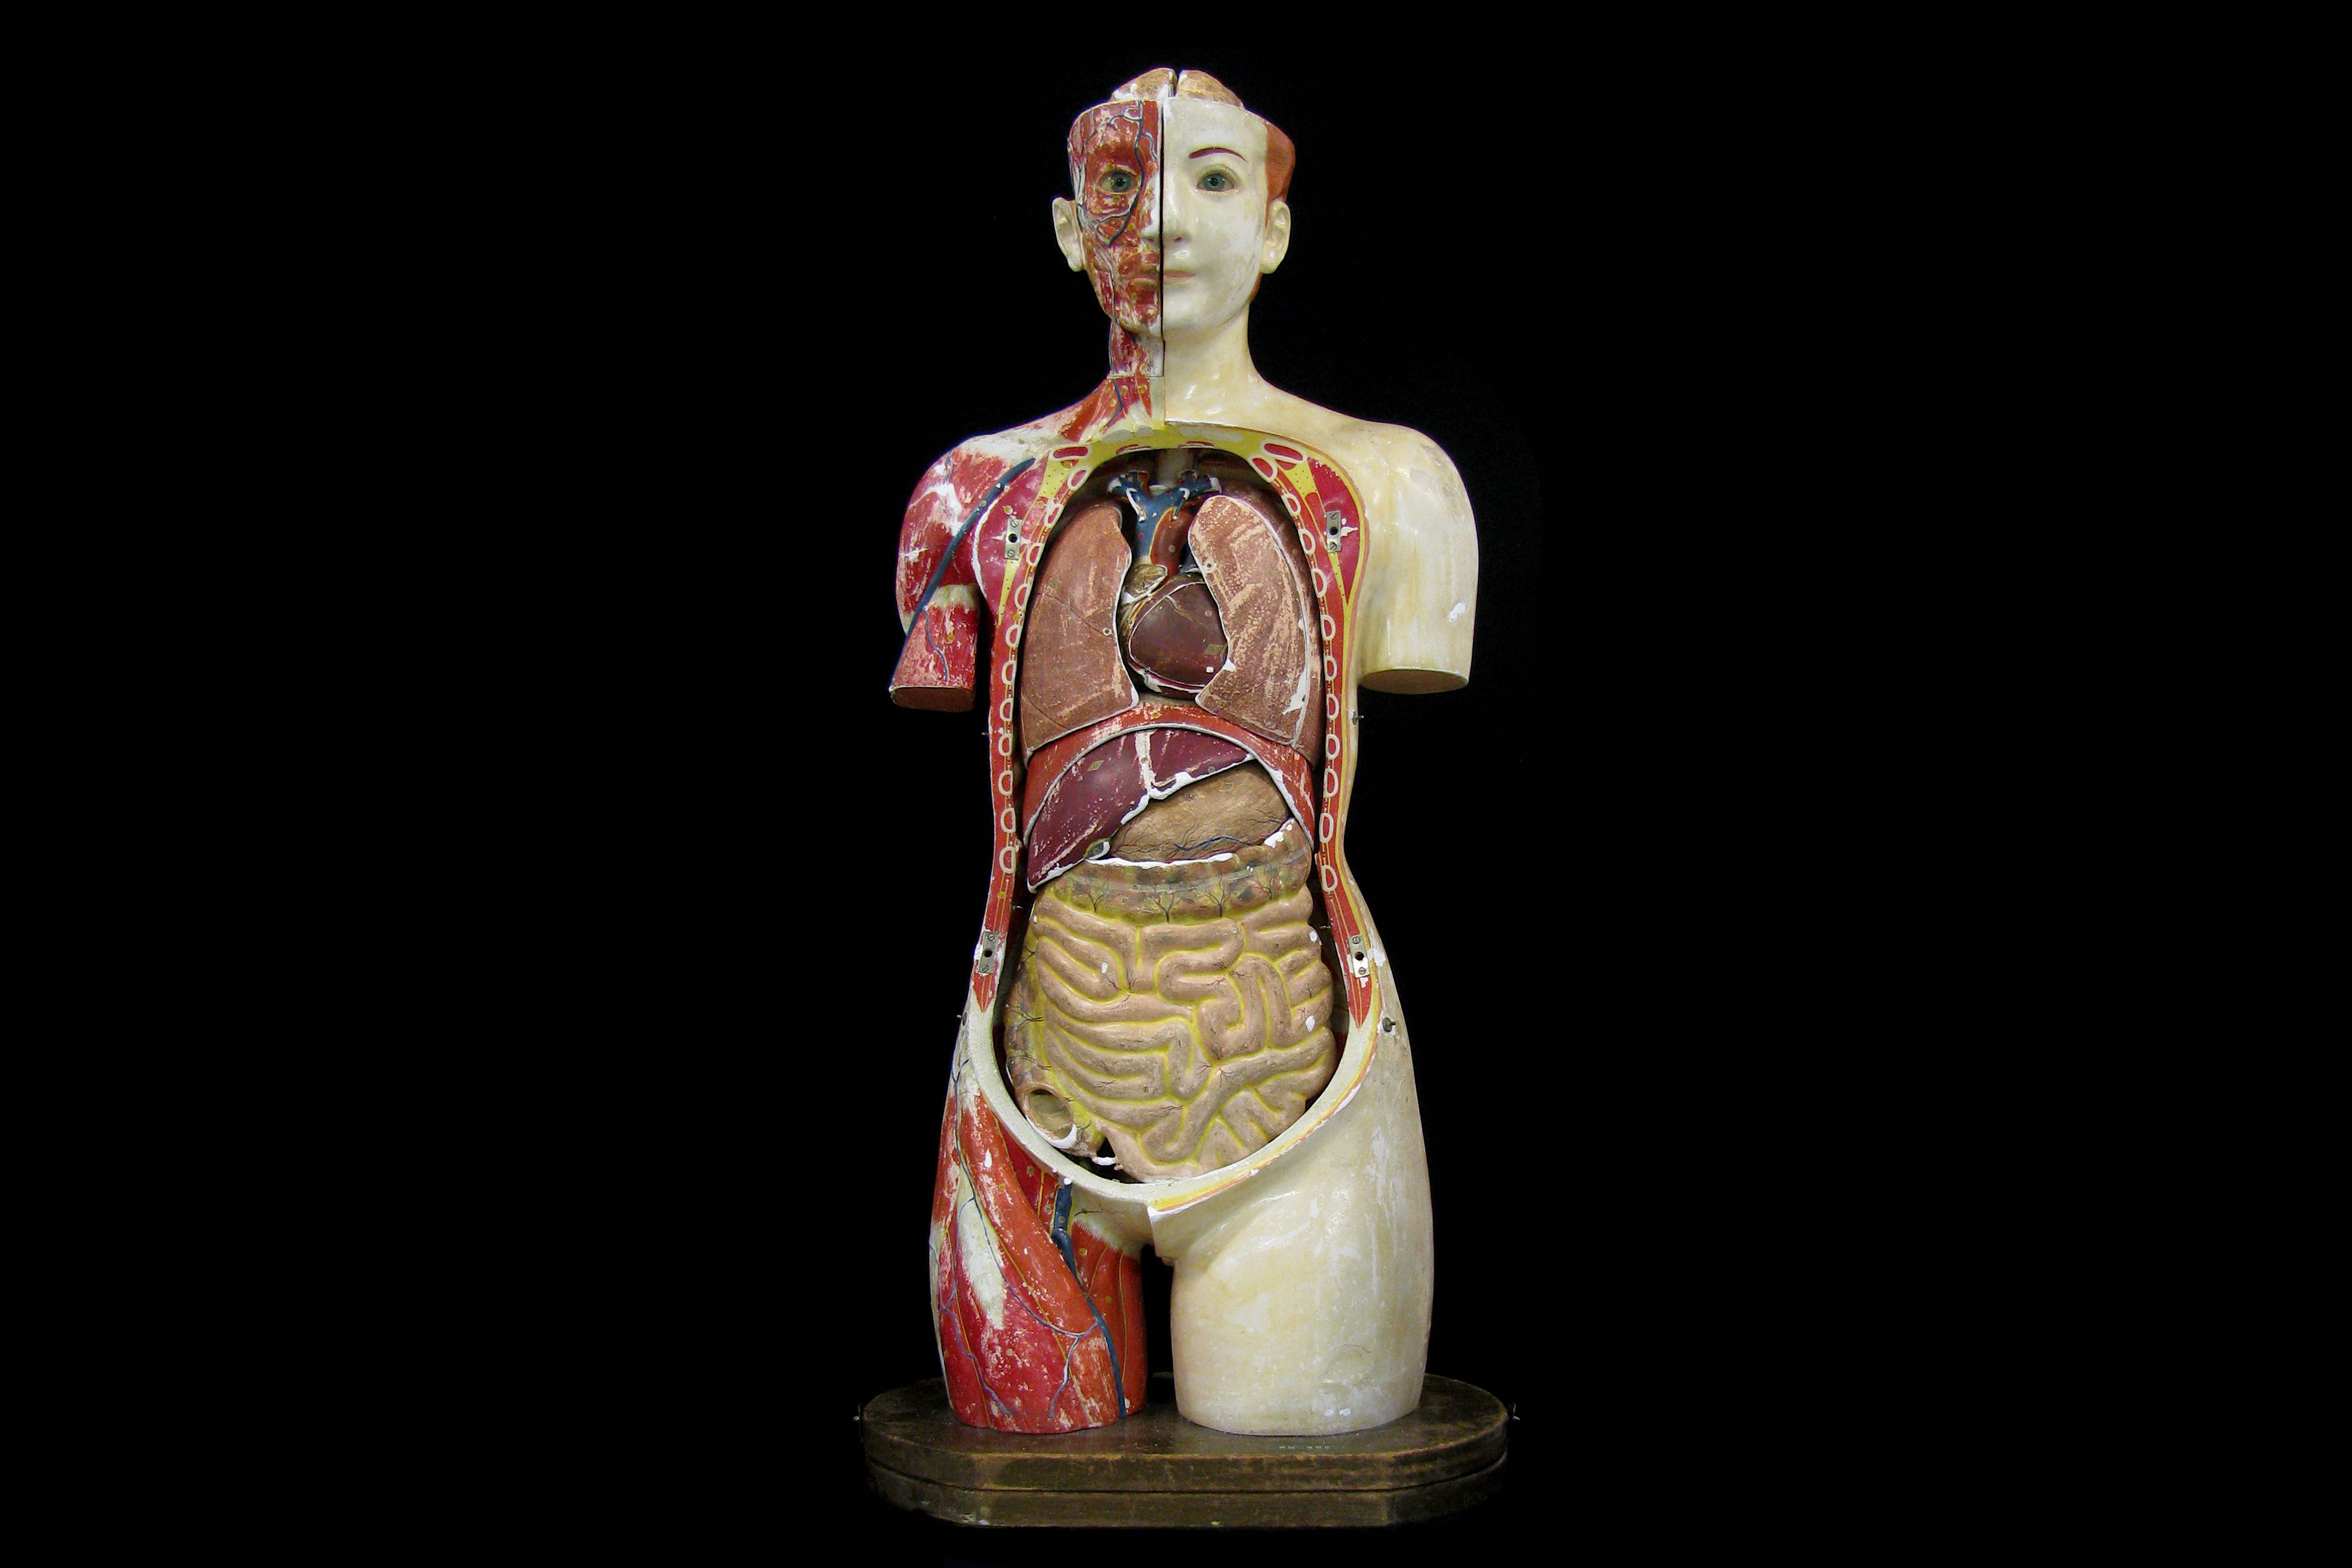 A FINE 1930'S JAPANESE LIFE-SIZE ANATOMICAL MODEL TORSO OF THE FEMALE FIGURE PRODUCED IN 1934 BY THE